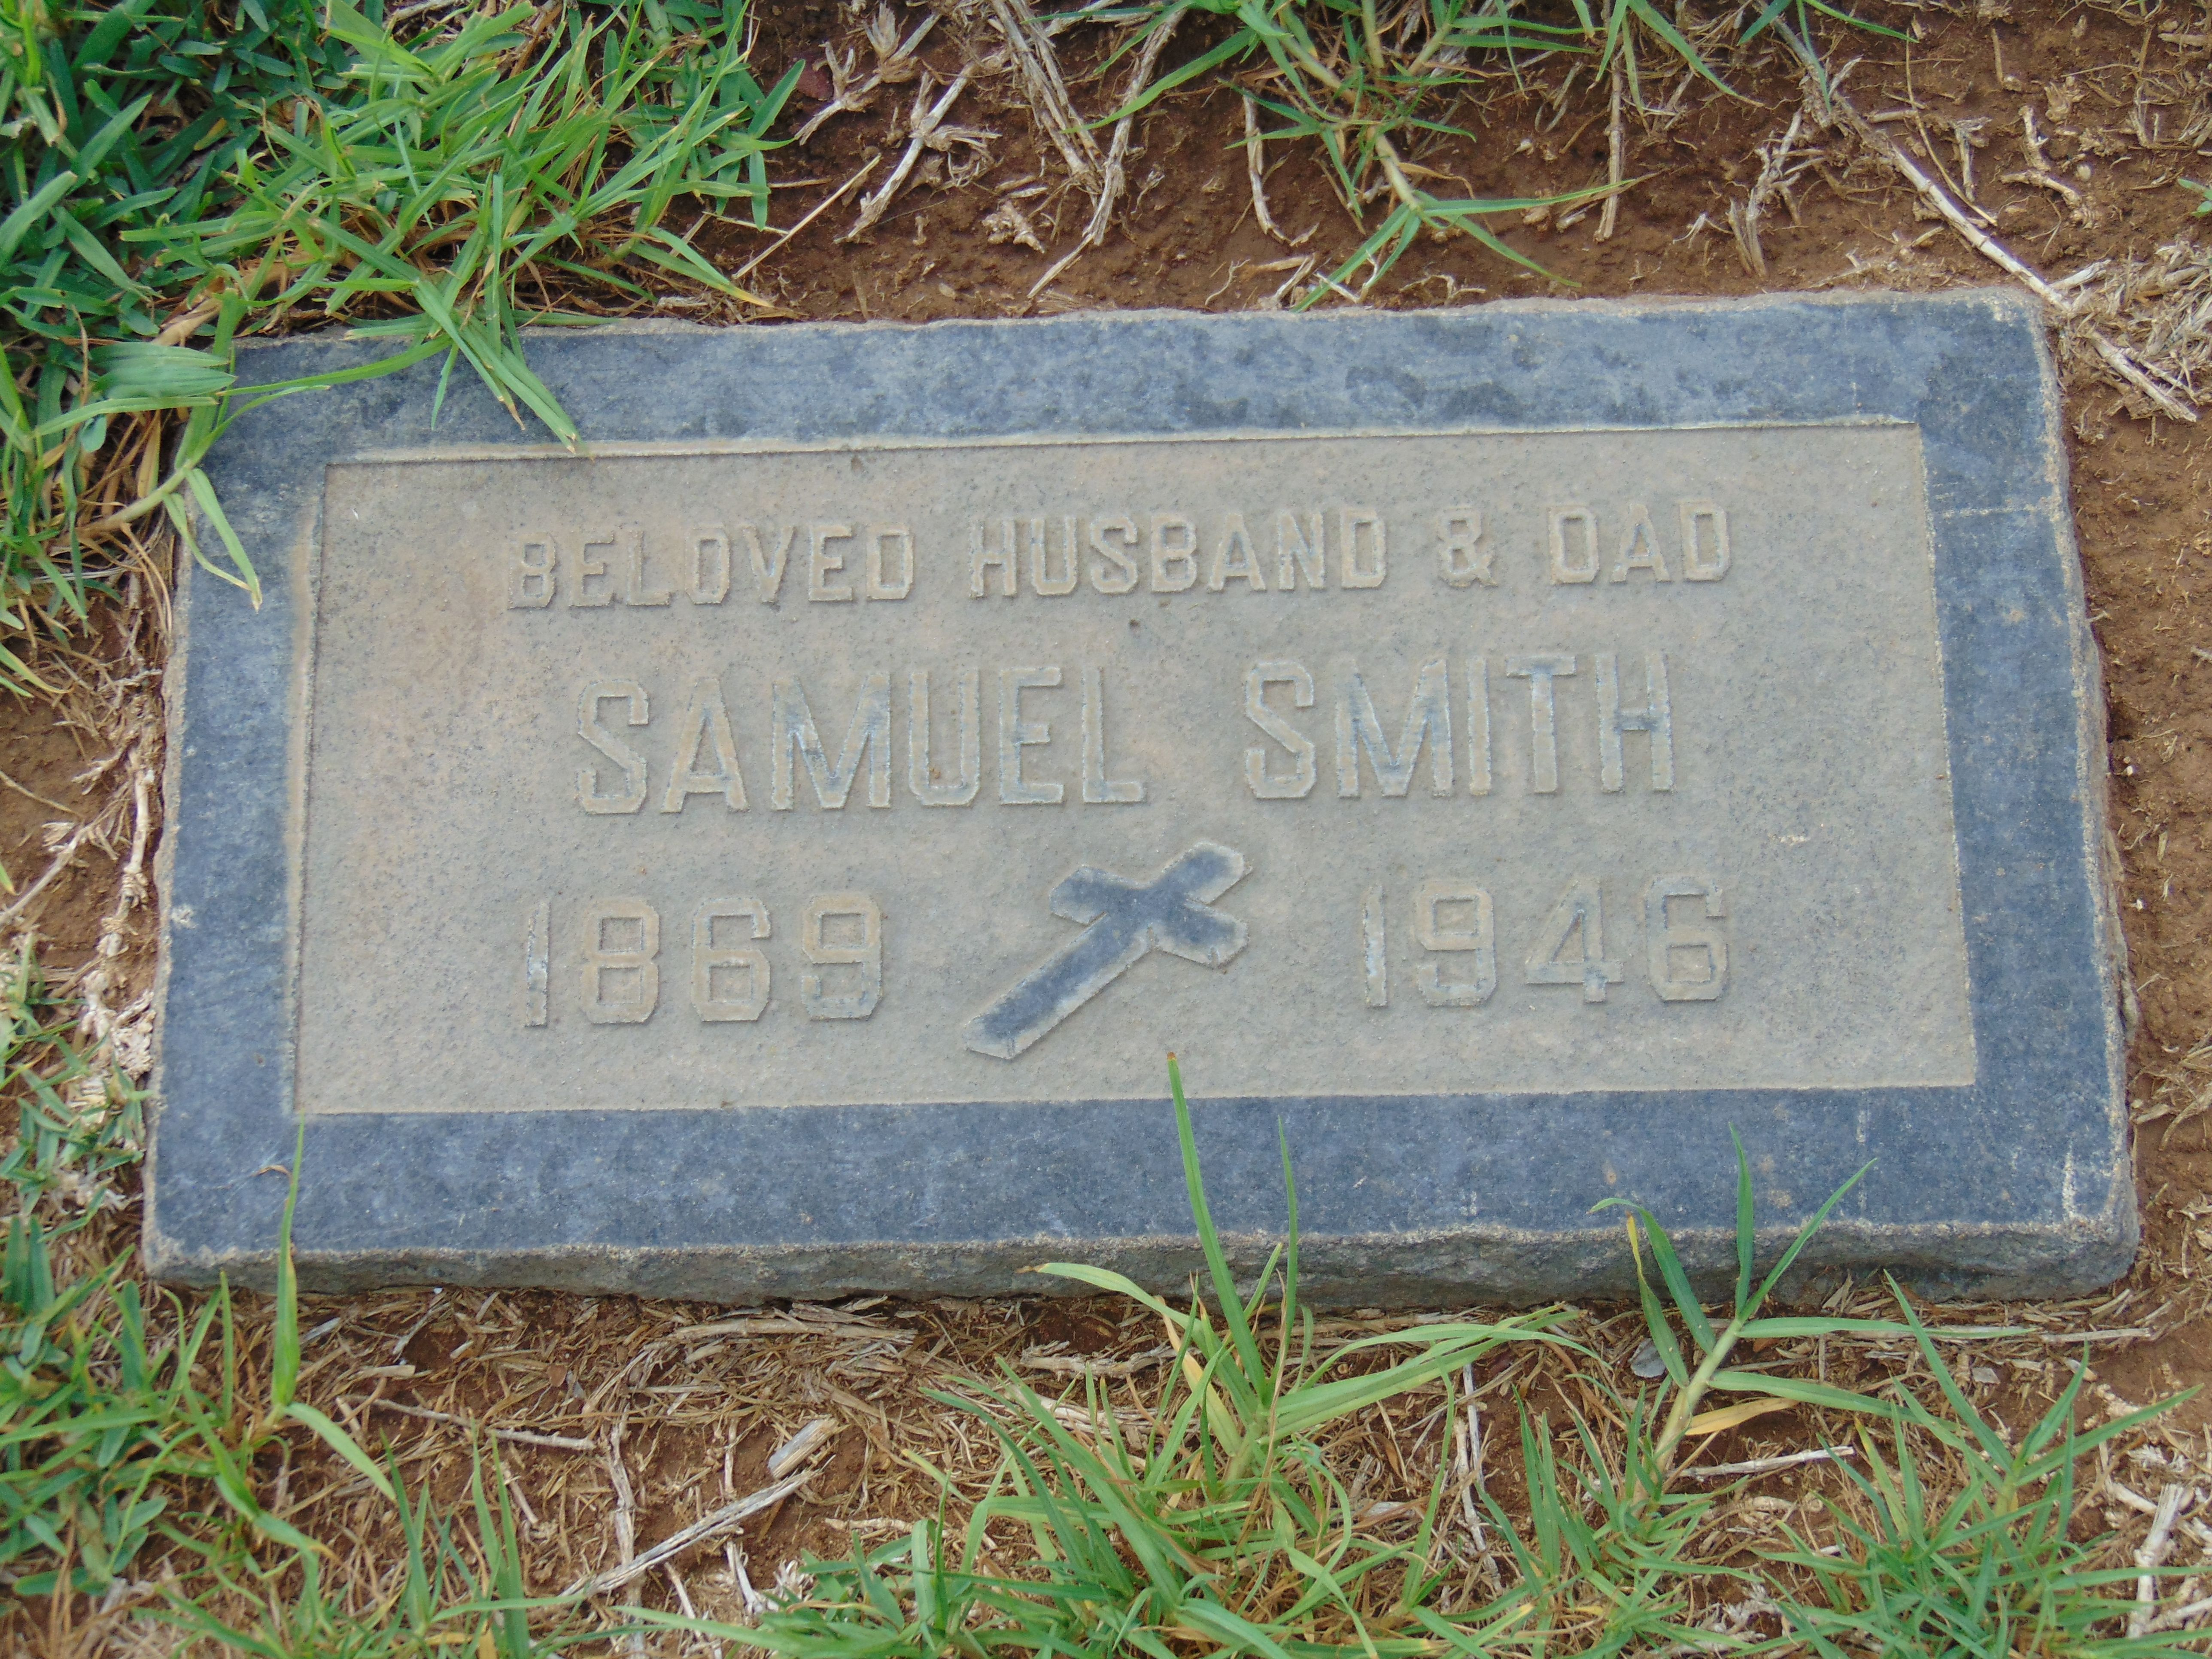 Samuel smith 1869 1946 find a grave memorial family born in 1869 and died in 1946 los angeles california samuel smith aiddatafo Choice Image